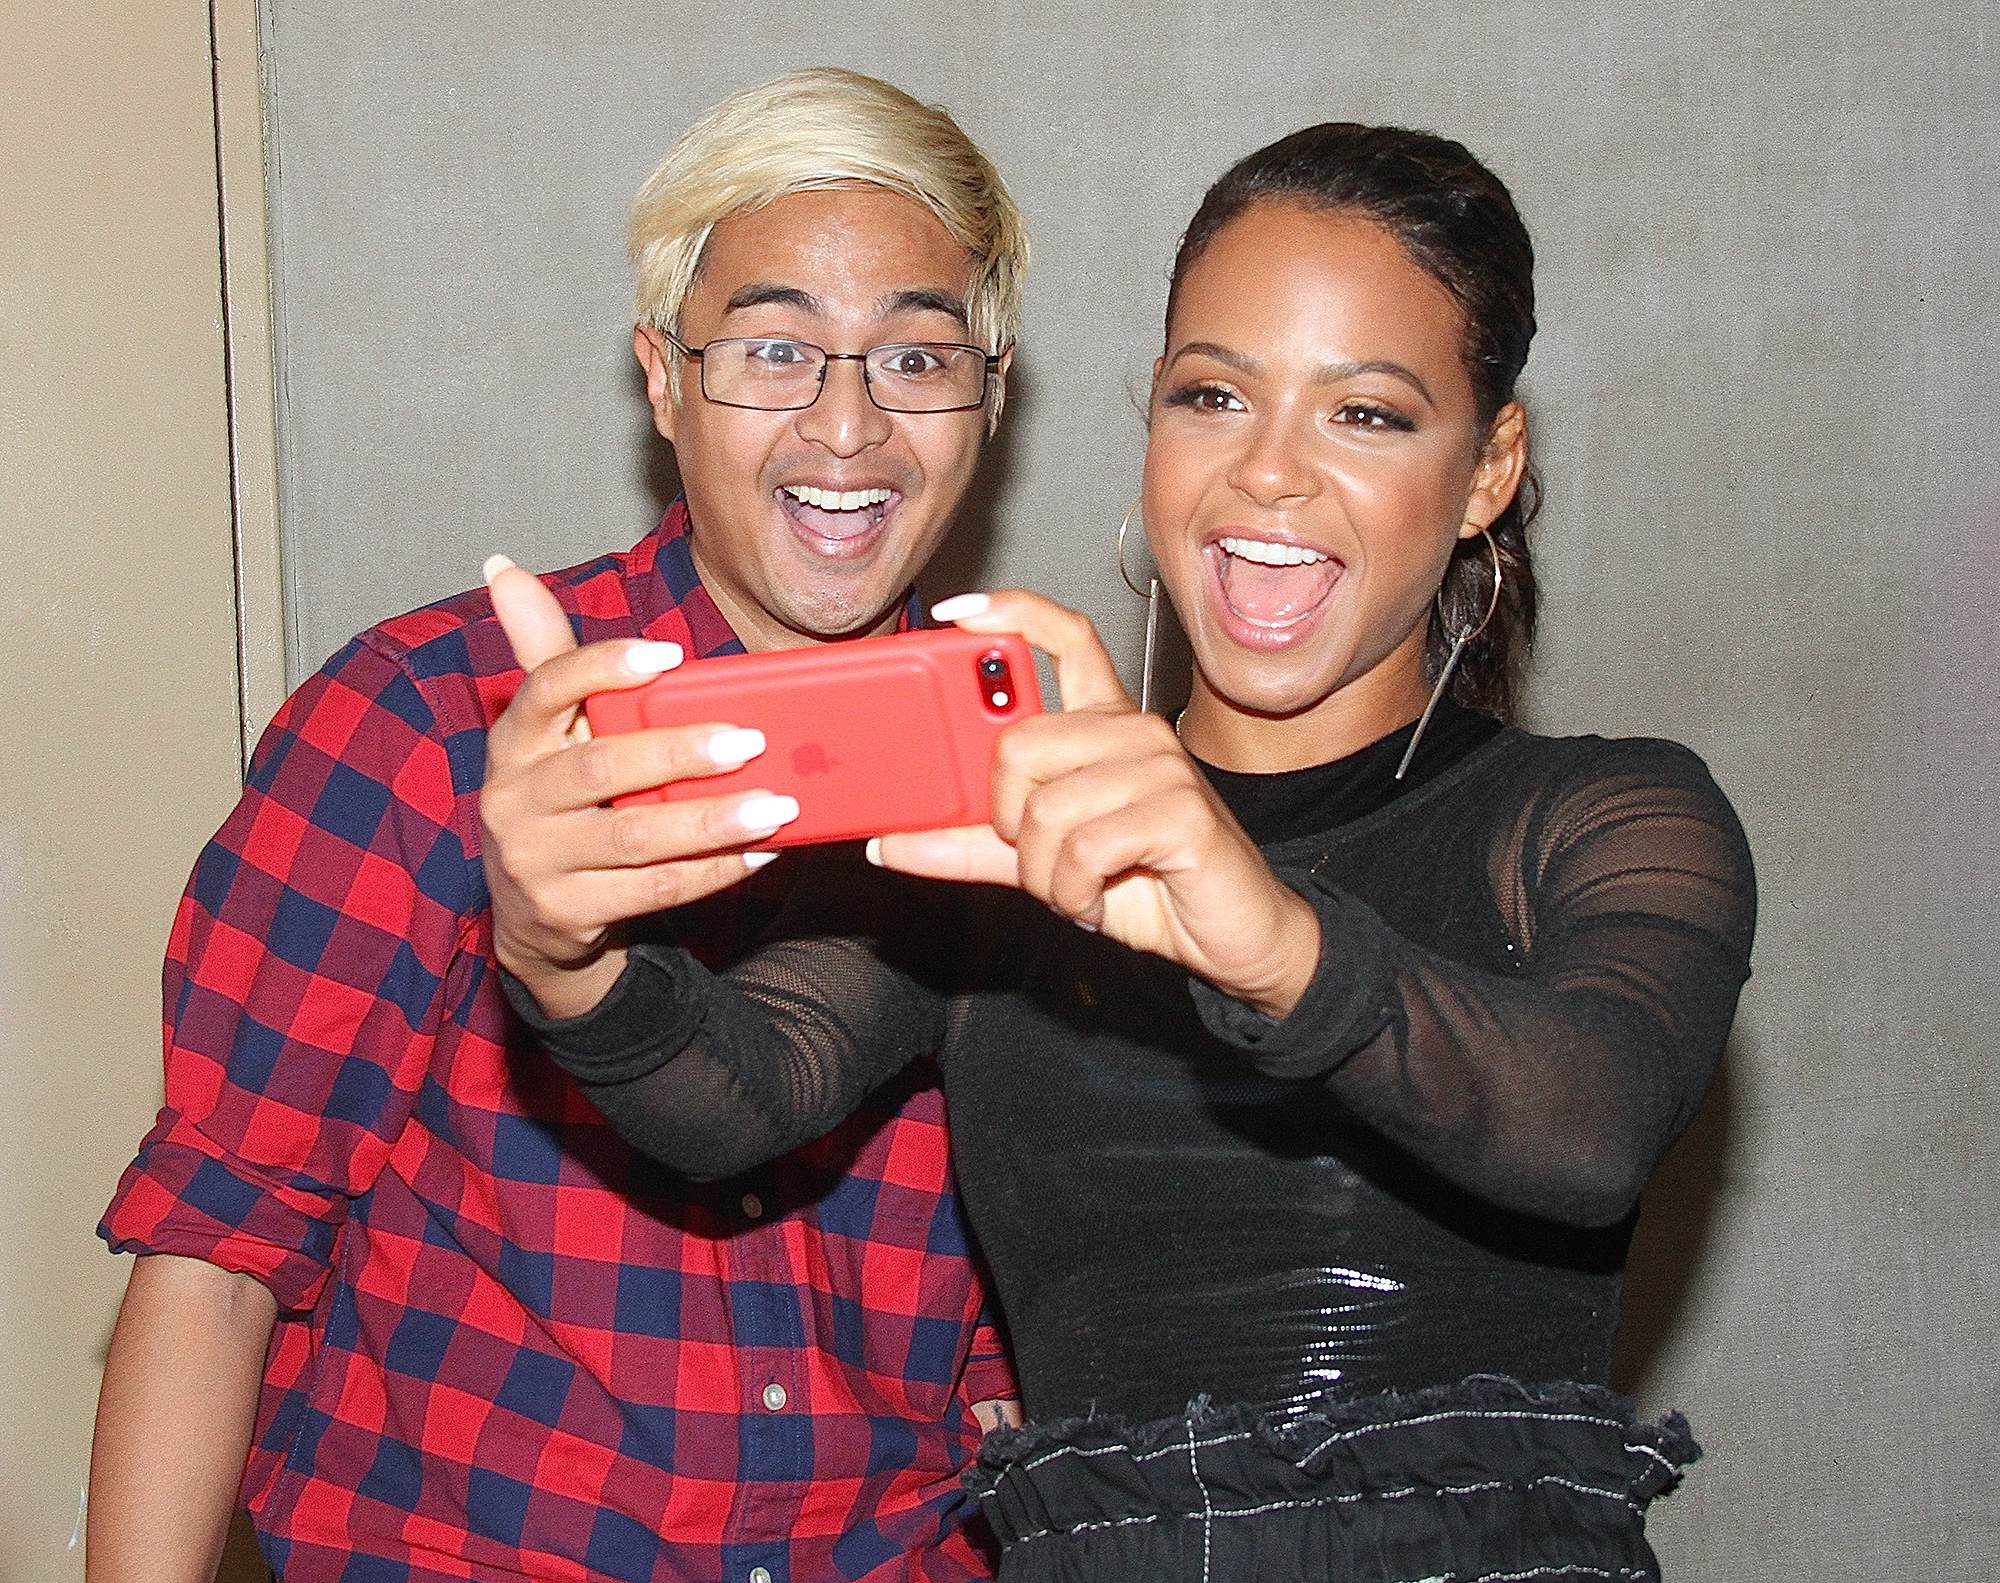 Actress, singer and media personality Christina Milian spotted taking a fun selfie with a fan at the 'Today' show in NYC's Rockefeller Center